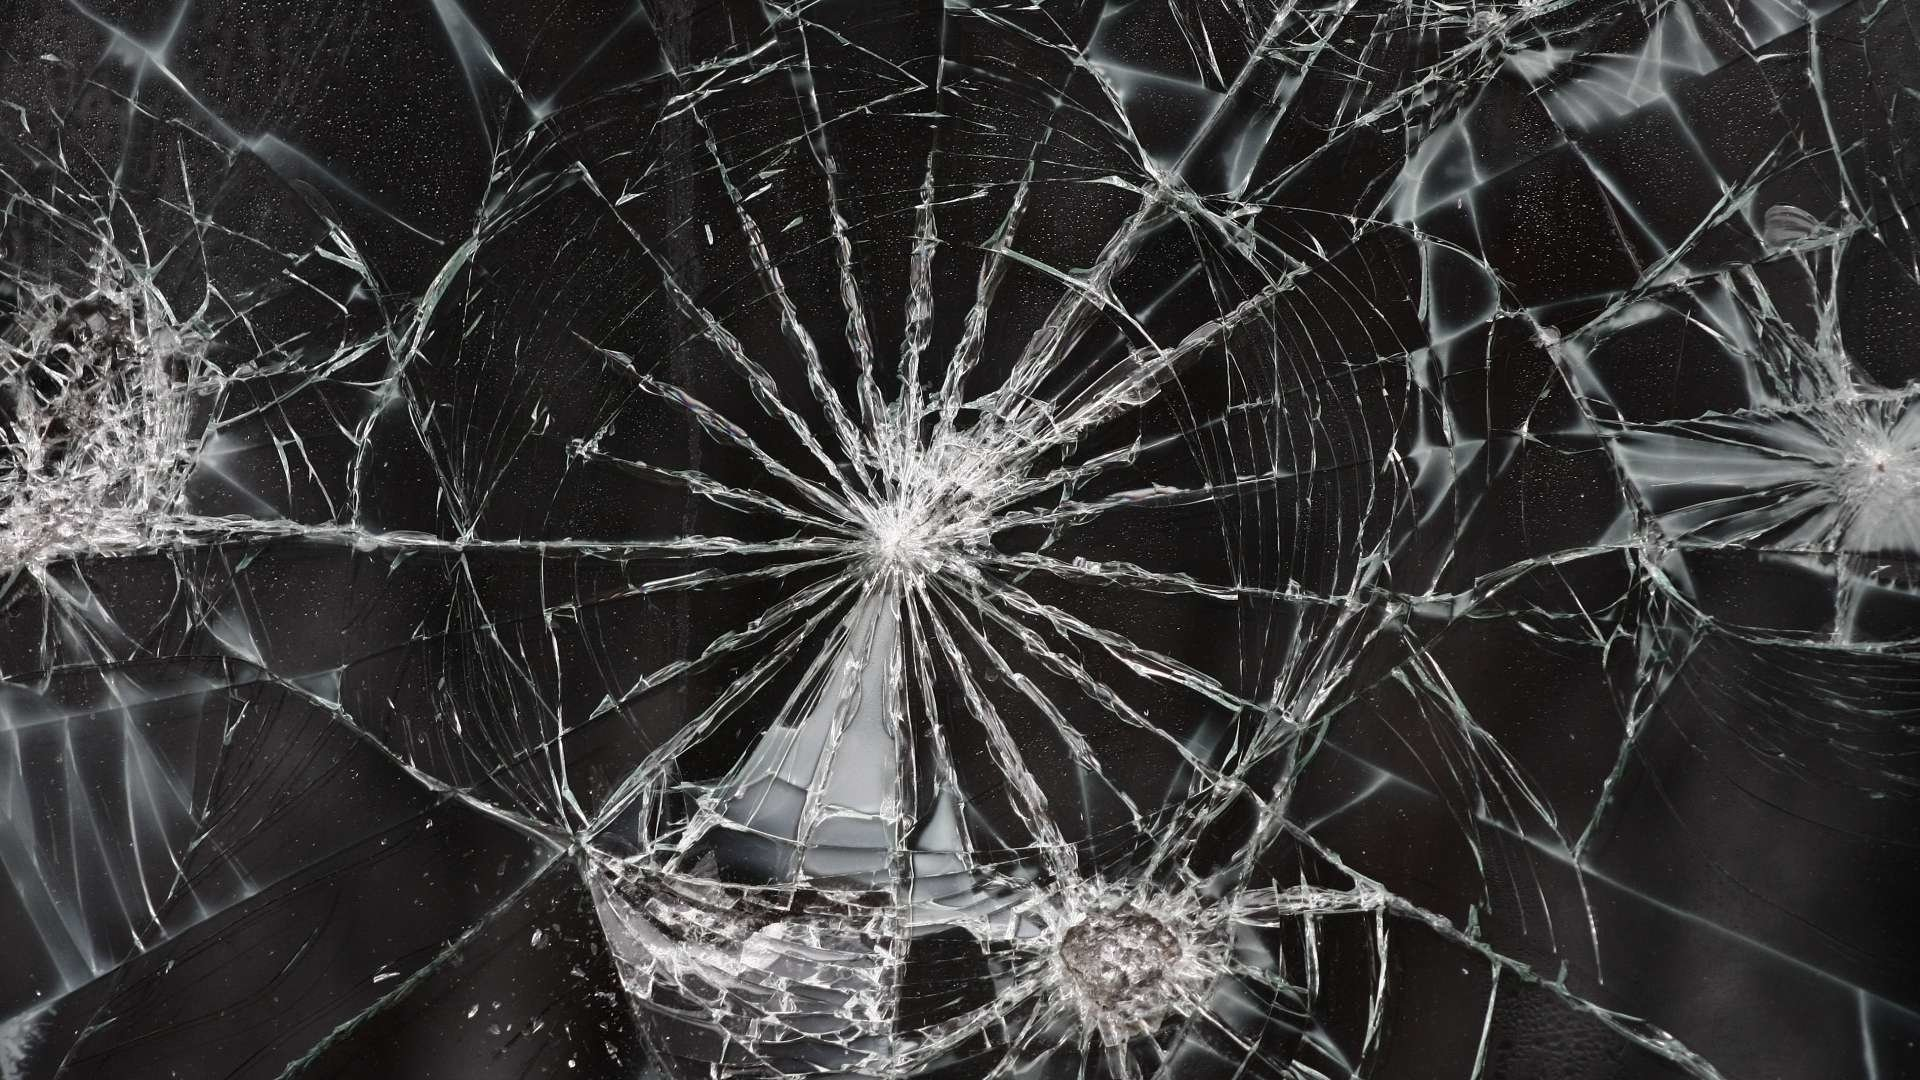 14 cracked screen hd wallpapers background images wallpaper abyss hd wallpaper background image id687707 1920x1080 technology cracked screen voltagebd Gallery